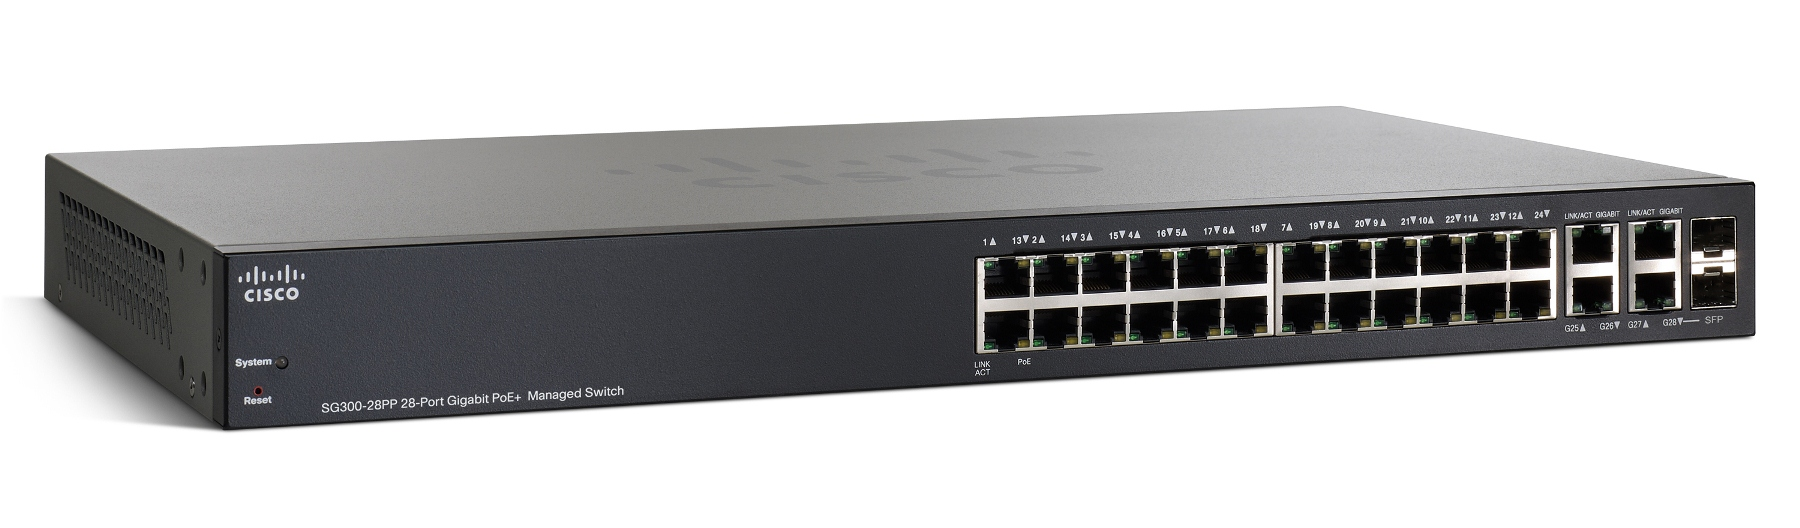 Cisco SG300-28PP 28-port Gigabit PoE+ Managed Switch